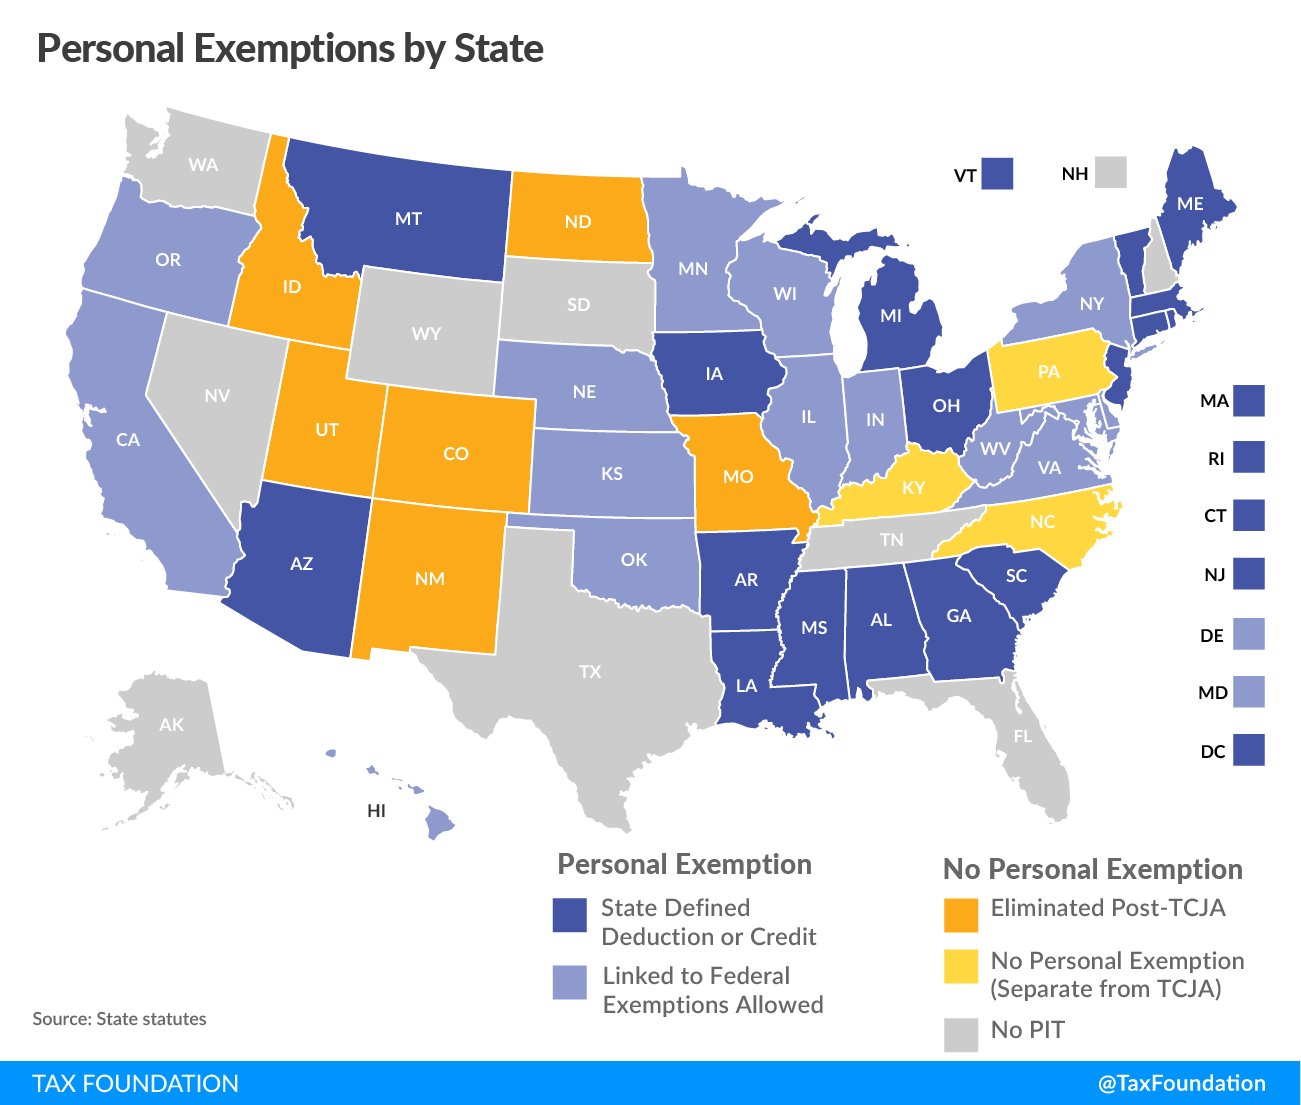 State Personal Exemptions a Year After Federal Tax Reform